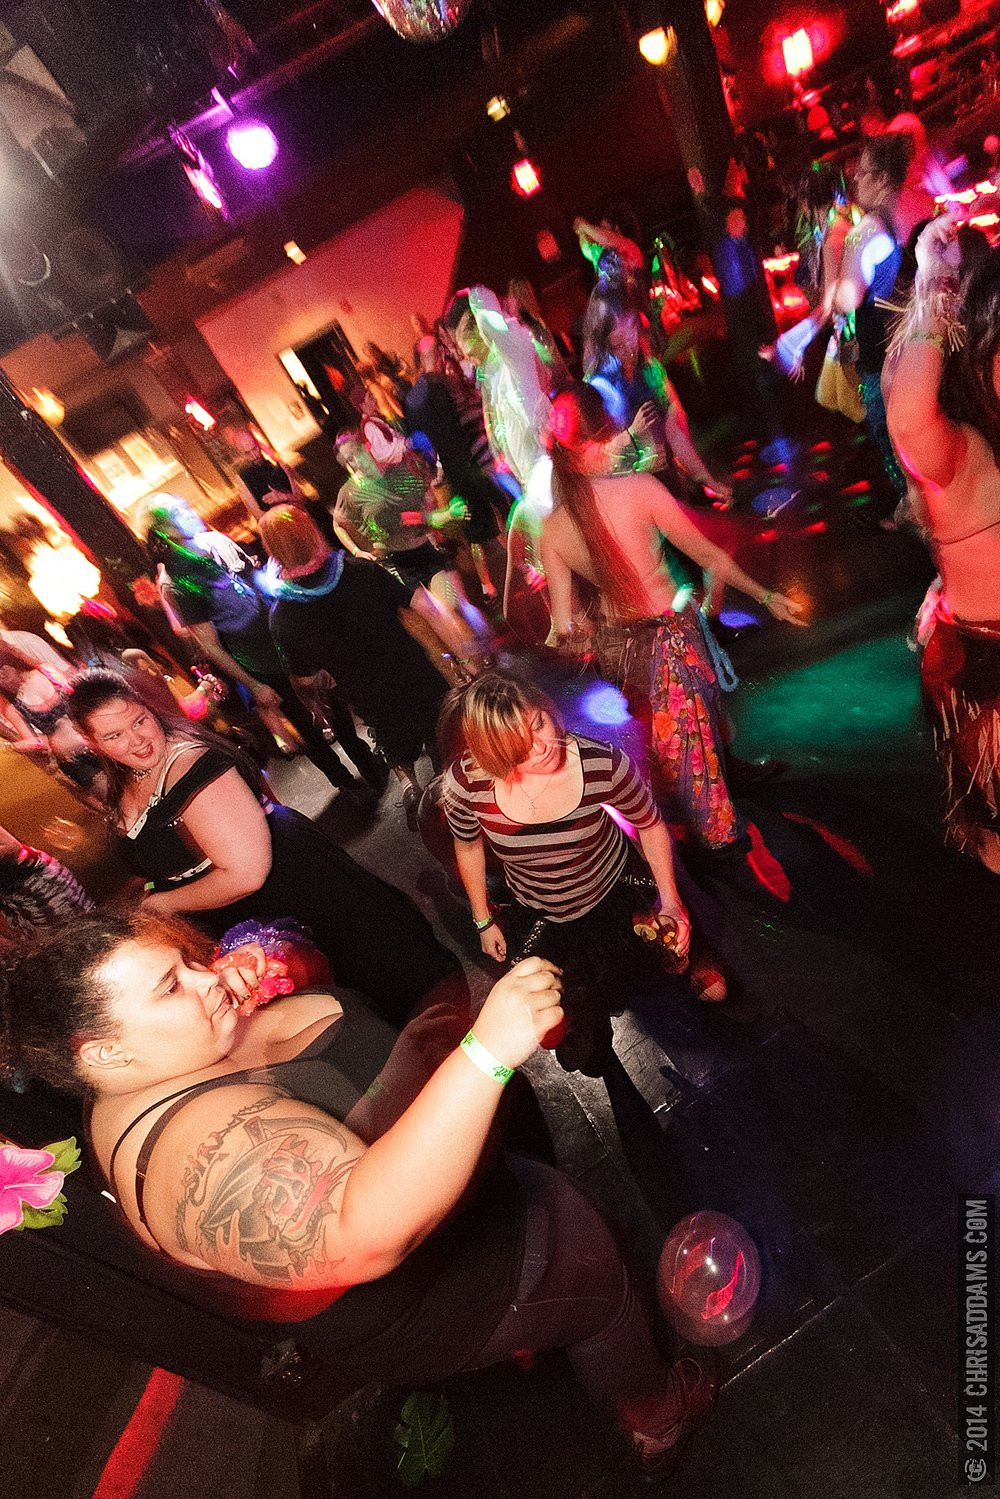 TheHavenClub-Goth-Industrial-Dance-Alternative-Northampton-MA (45).jpg